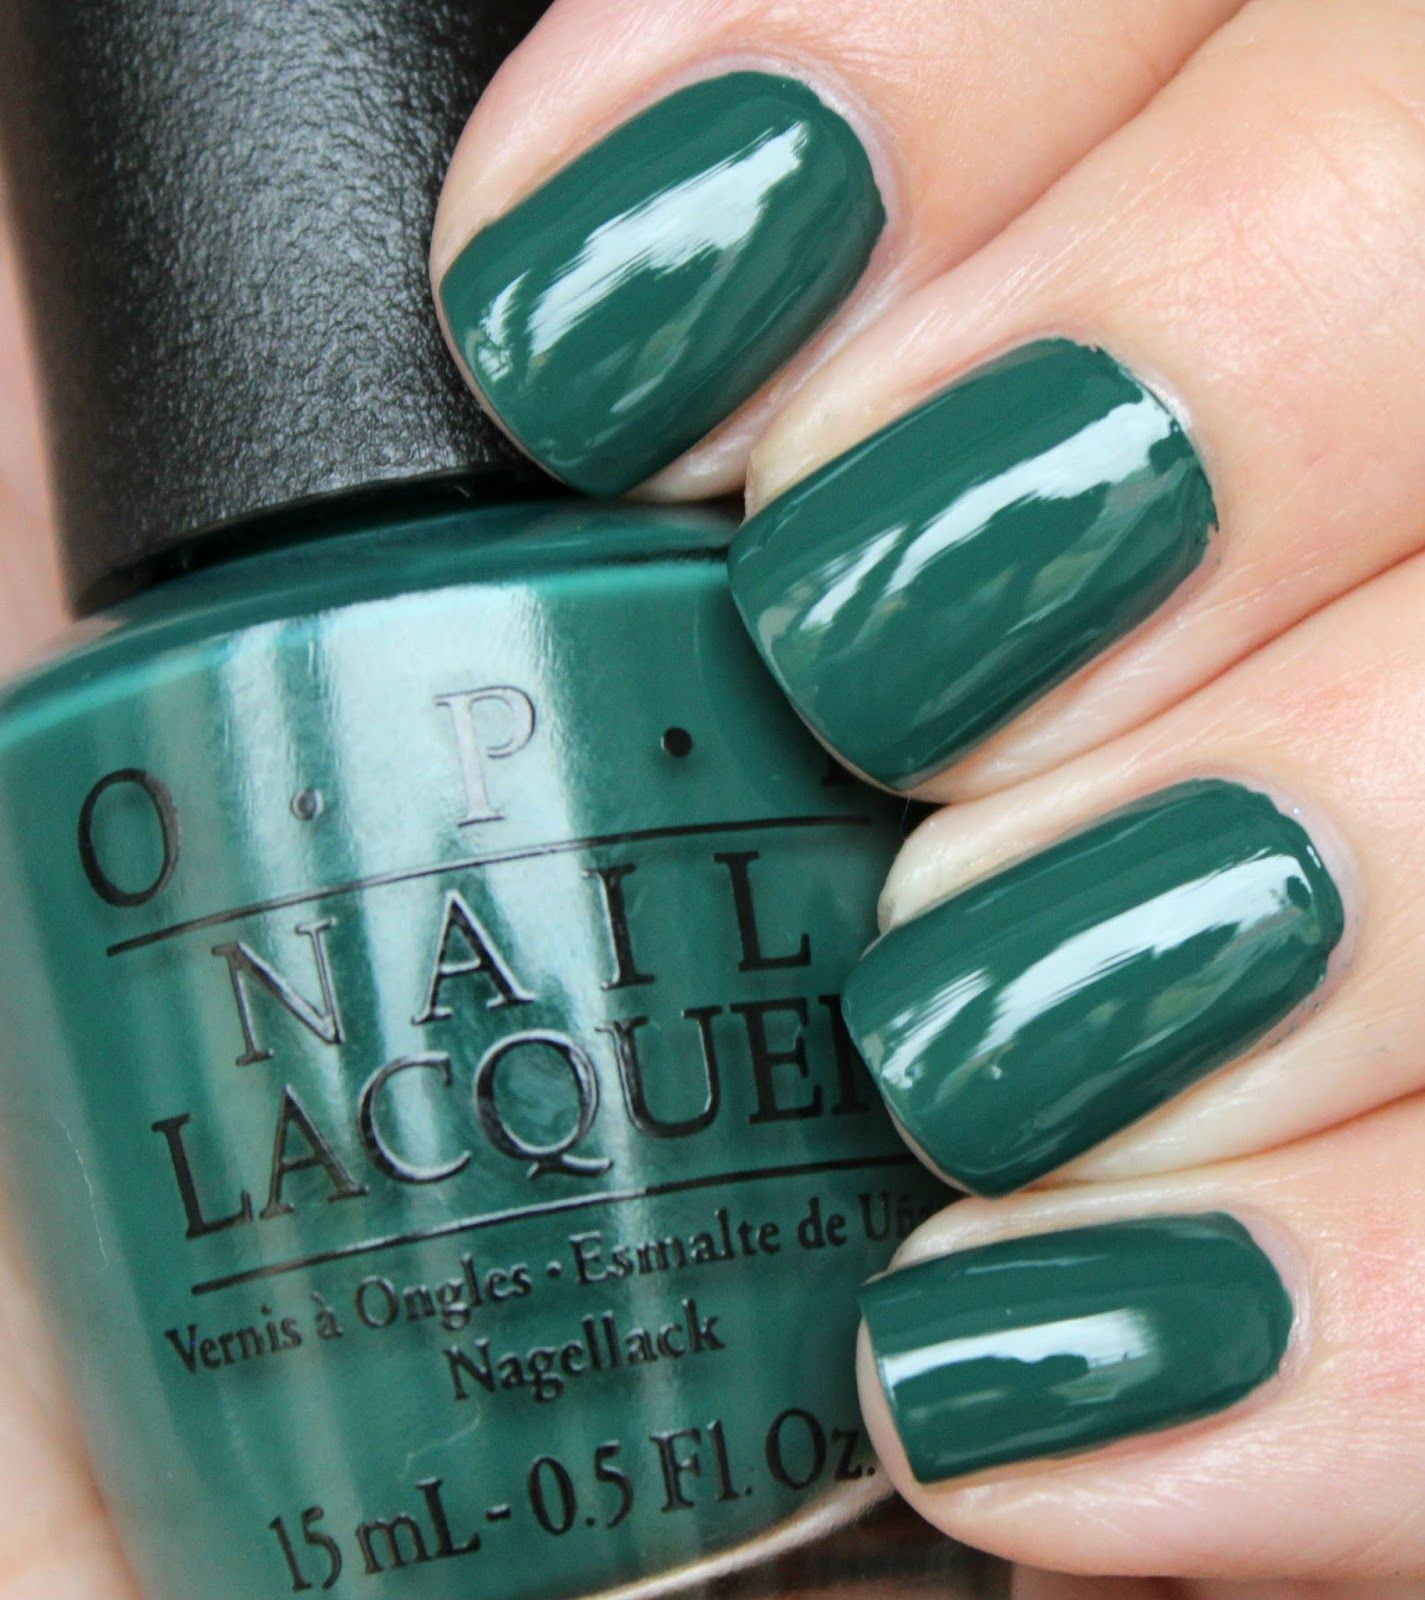 OPI Stay Off the Lawn!!! | Nails | Pinterest | Labiales, Esmalte y ...